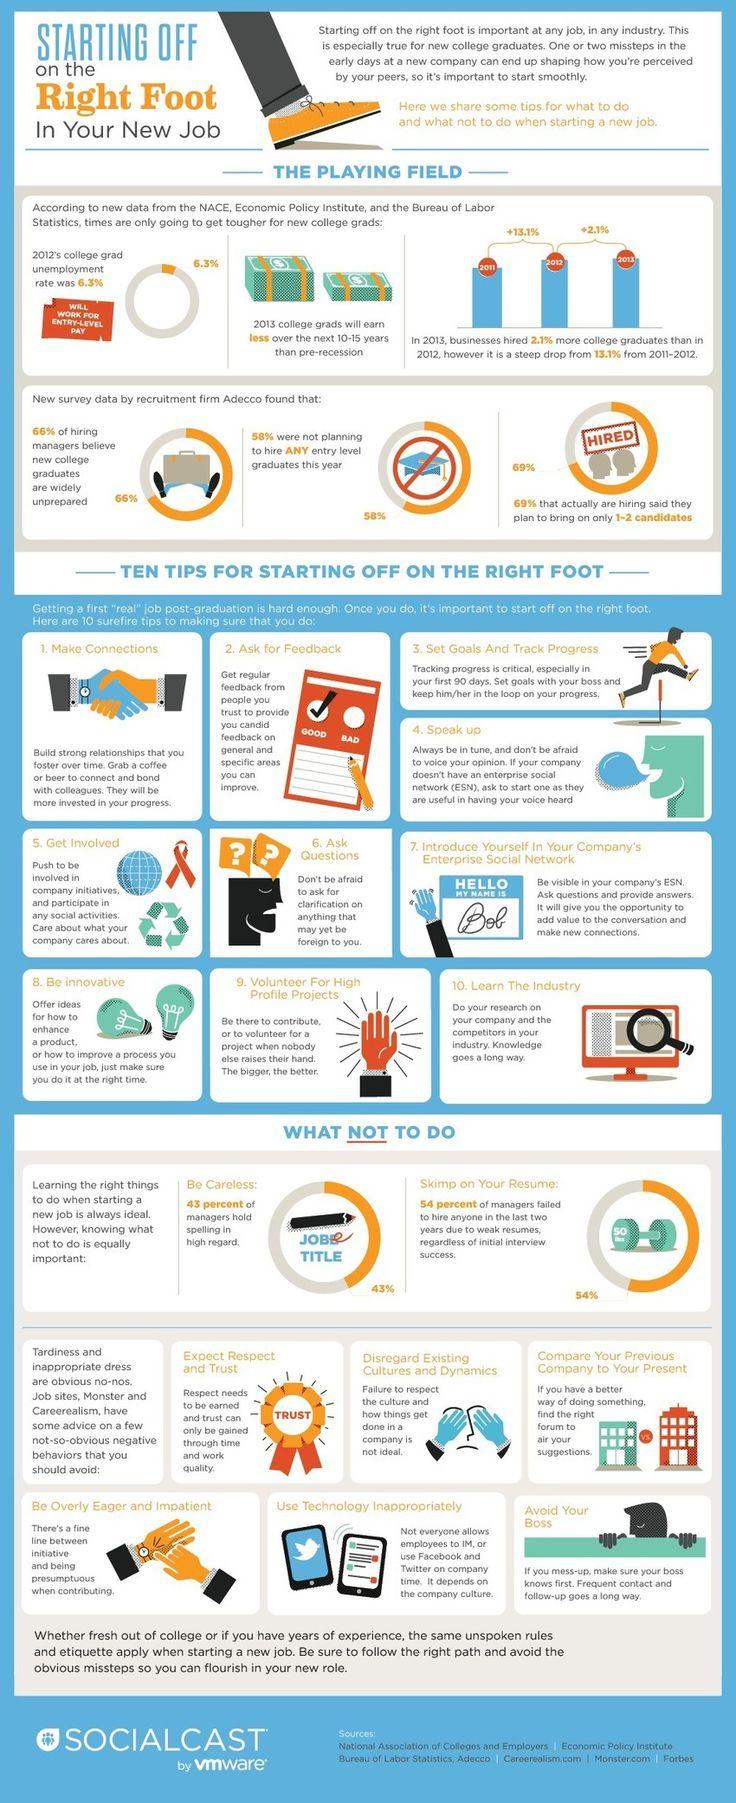 How To Start A New Job On The Right Foot [INFOGRAPHIC]